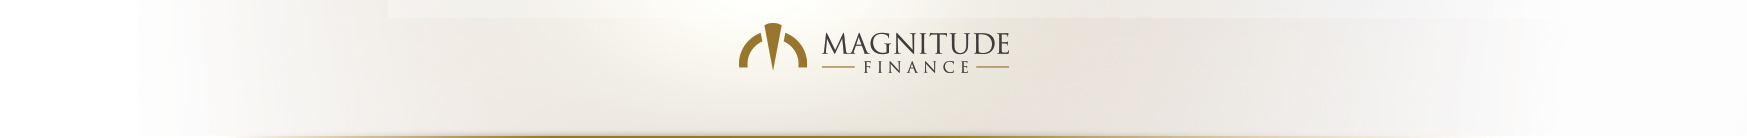 Magnitude Finance